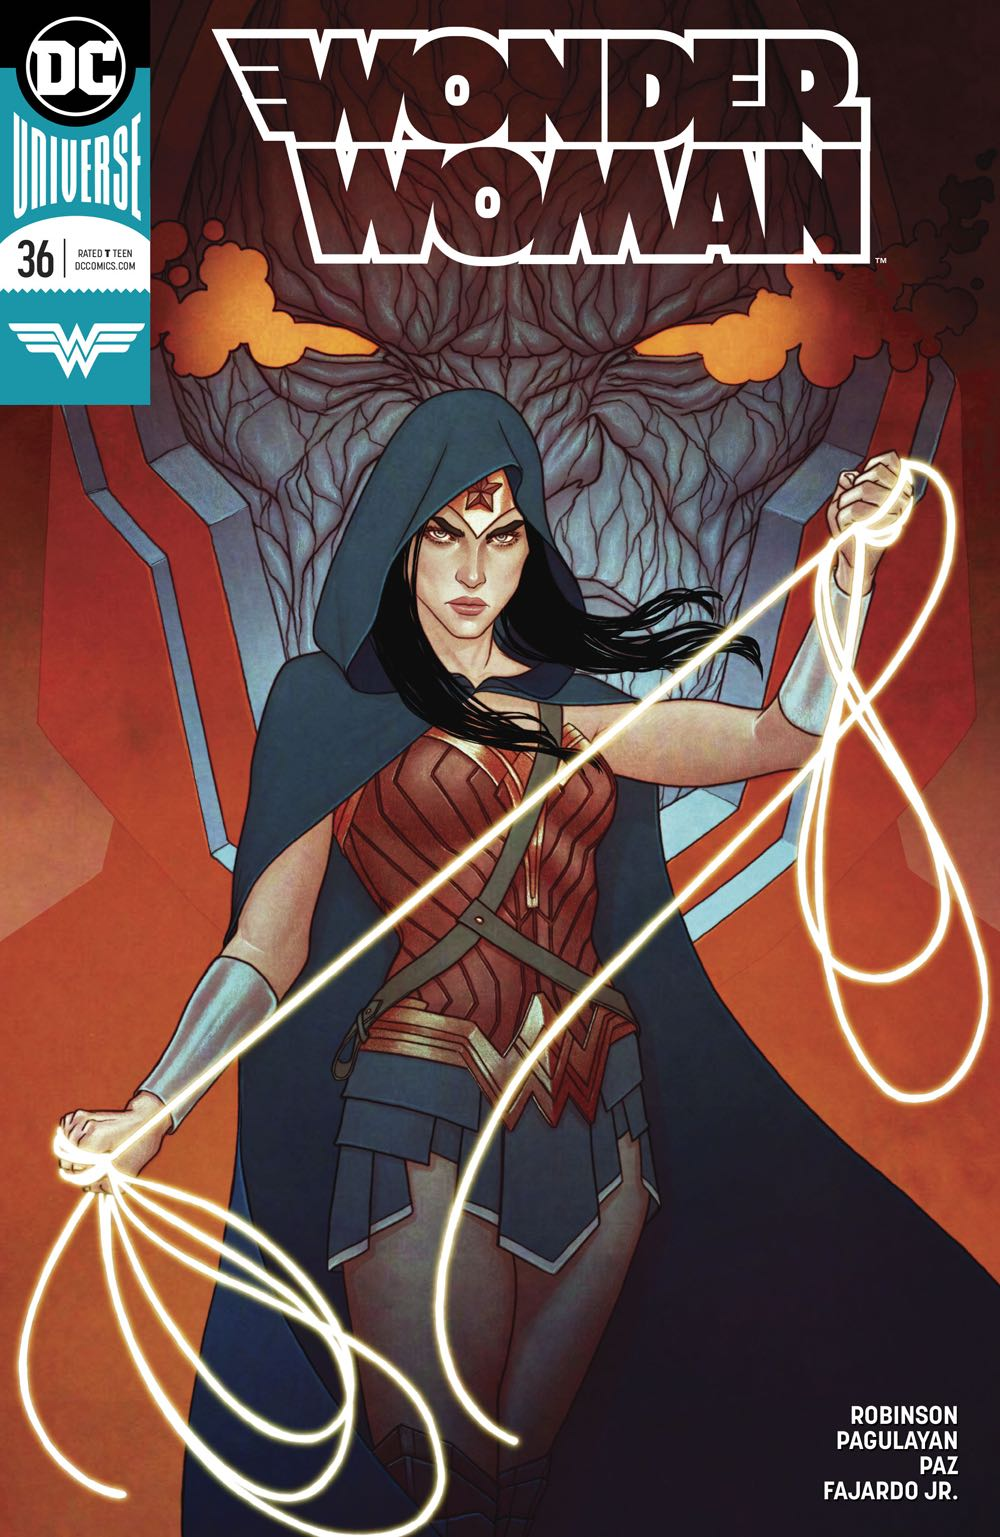 Episode 15 Variant of the Week! - (DC) Wonder Woman #36 (Frison Variant)Cover by Jenny FrisonWritten by James RobinsonIllustrated by Carlo Pagulayan and Jason PazDid the Content Match the Drapes? - UNR